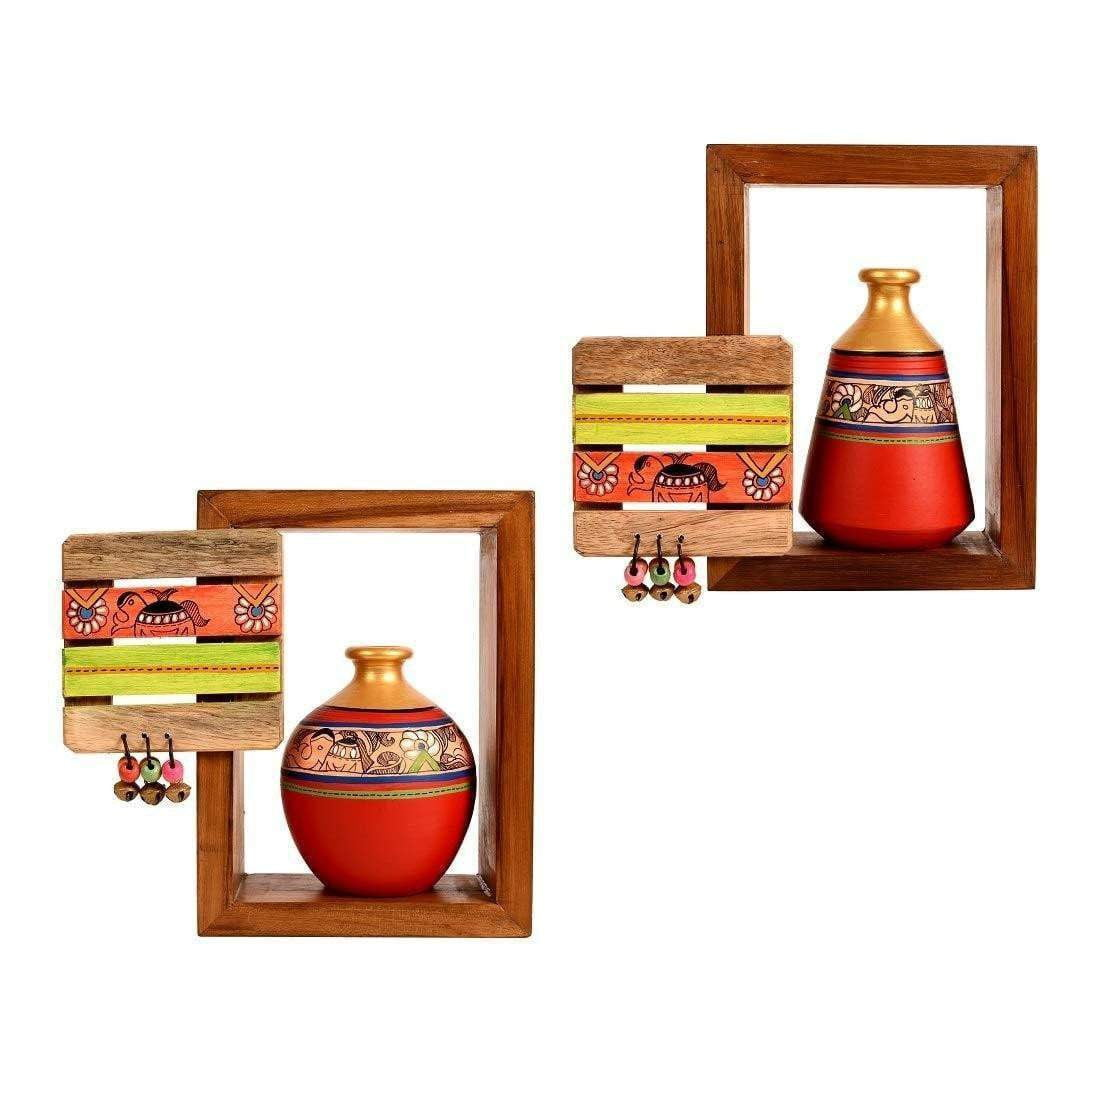 Madhubani Decorative Wooden Wall Mounted Shelves With Red Terracotta Pots